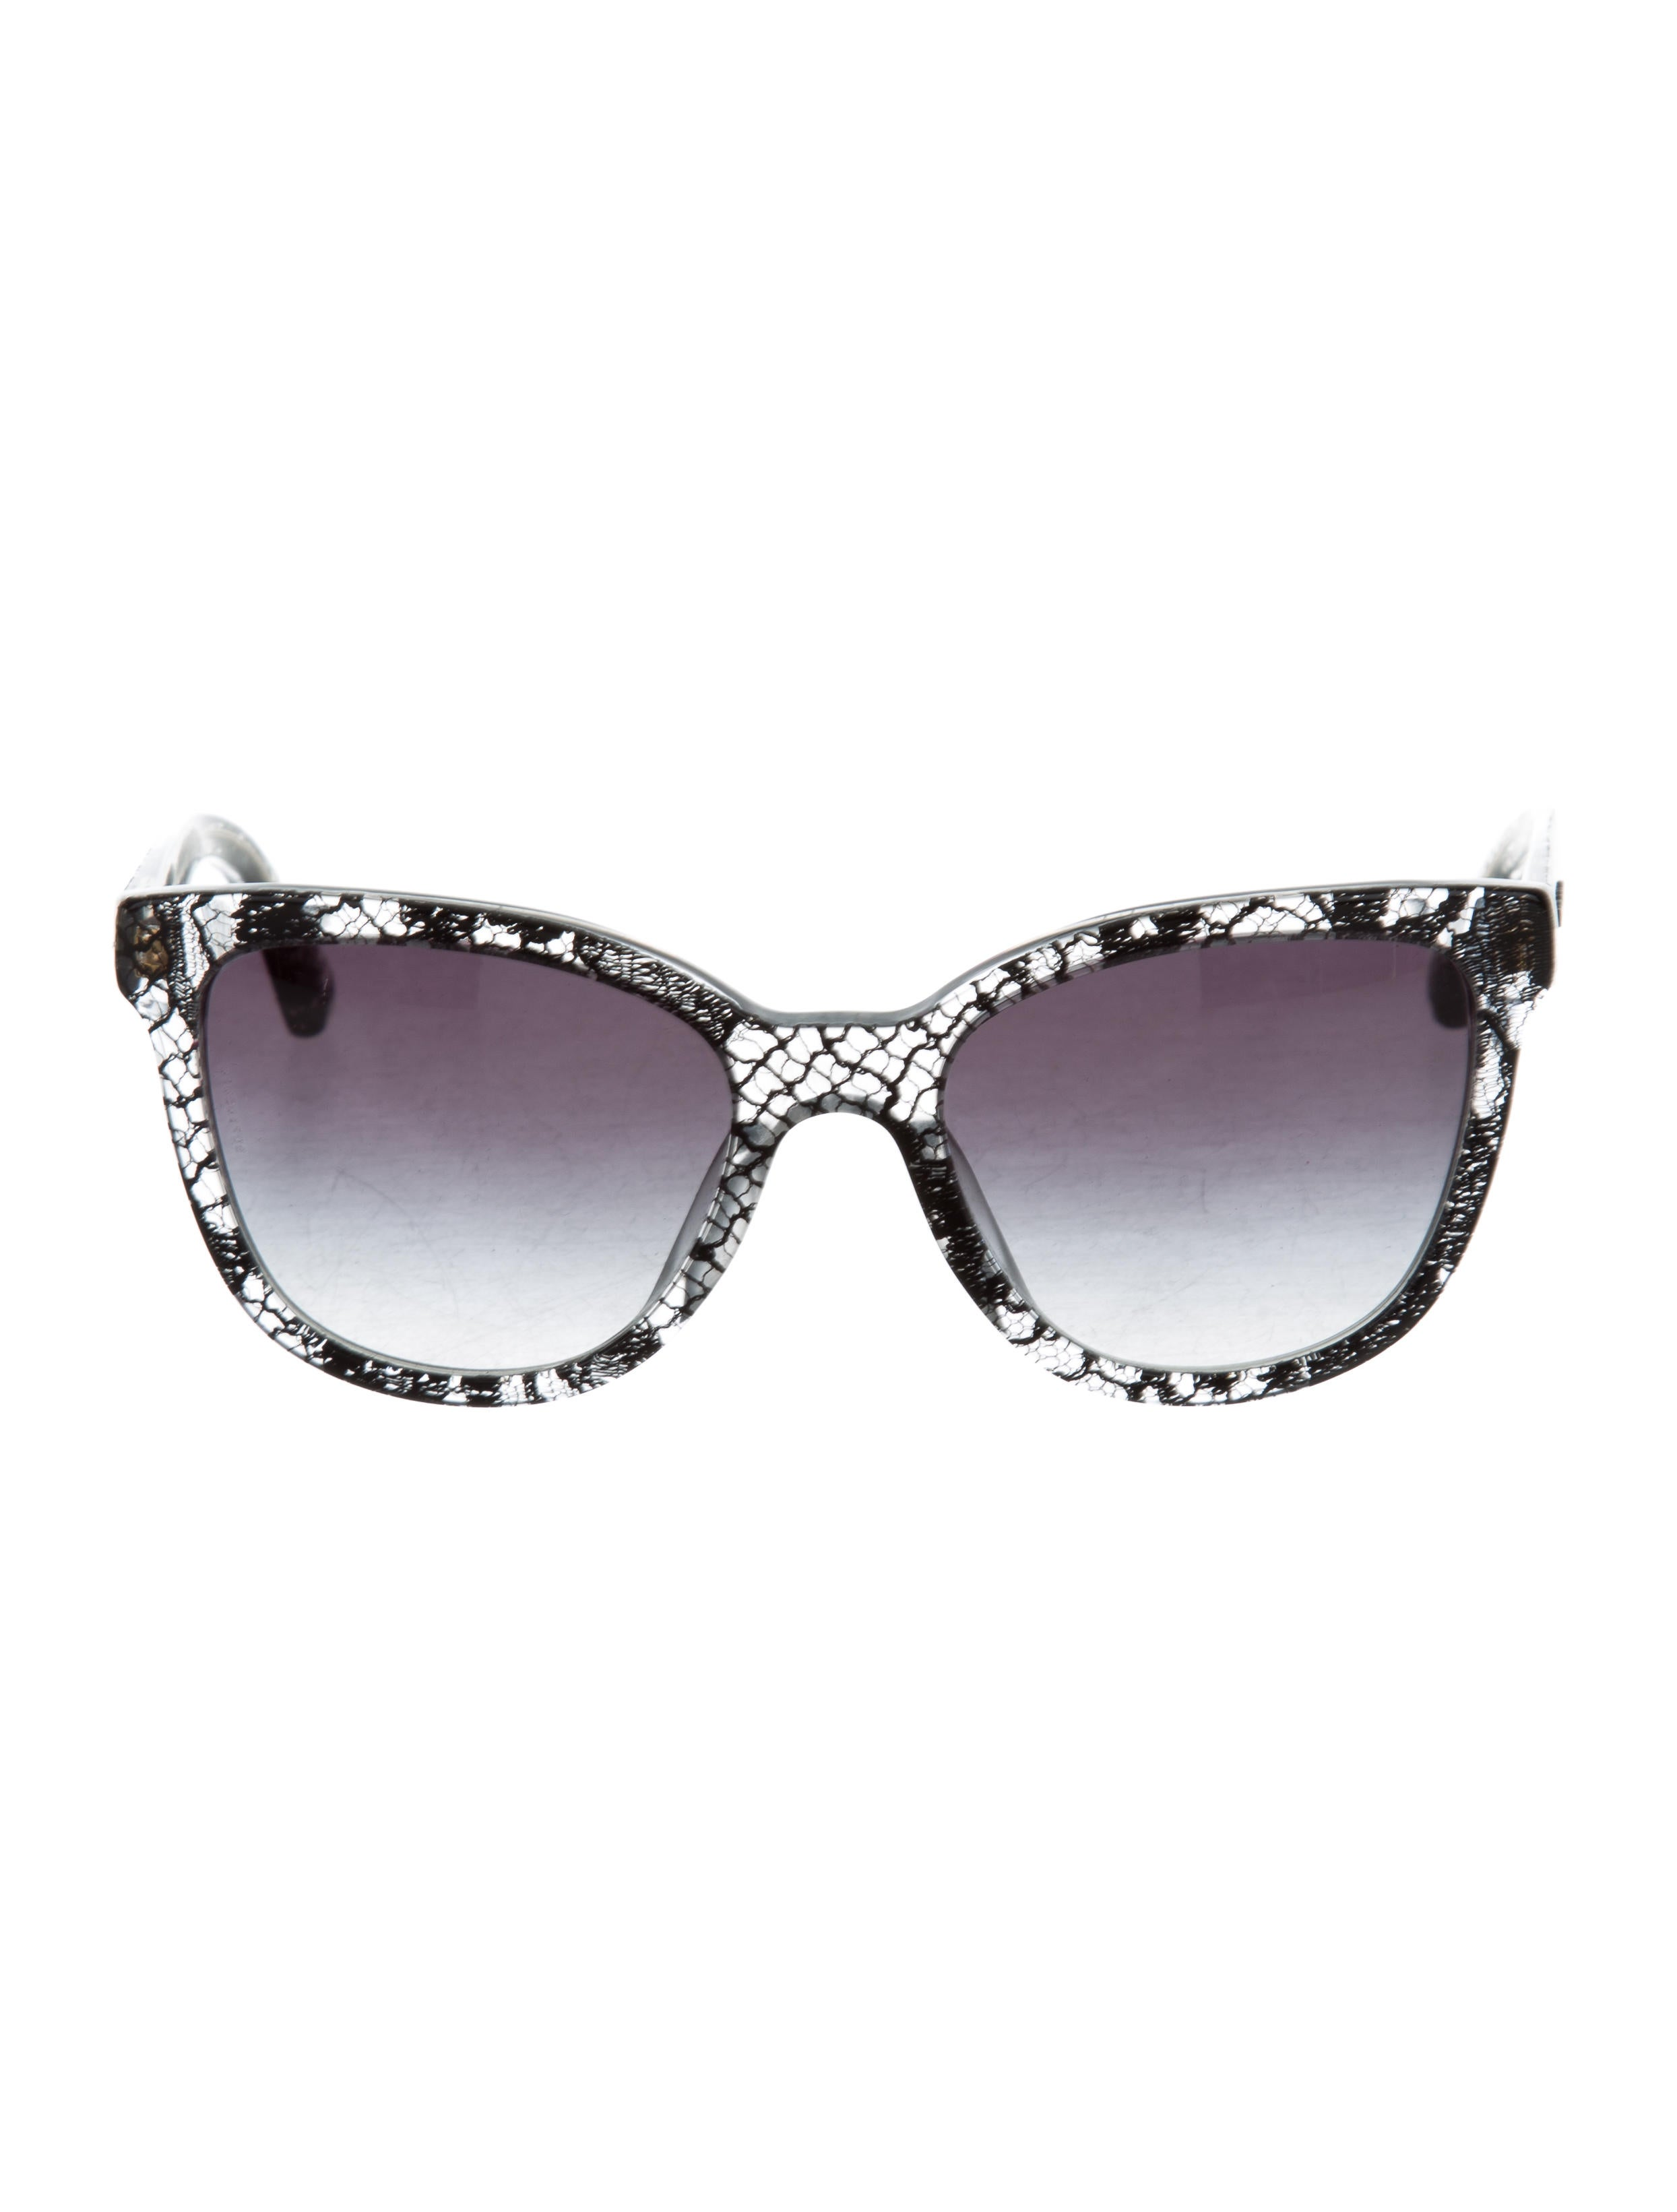 35ac750ff82f Dolce And Gabbana Classic Cat Eye Sunglasses